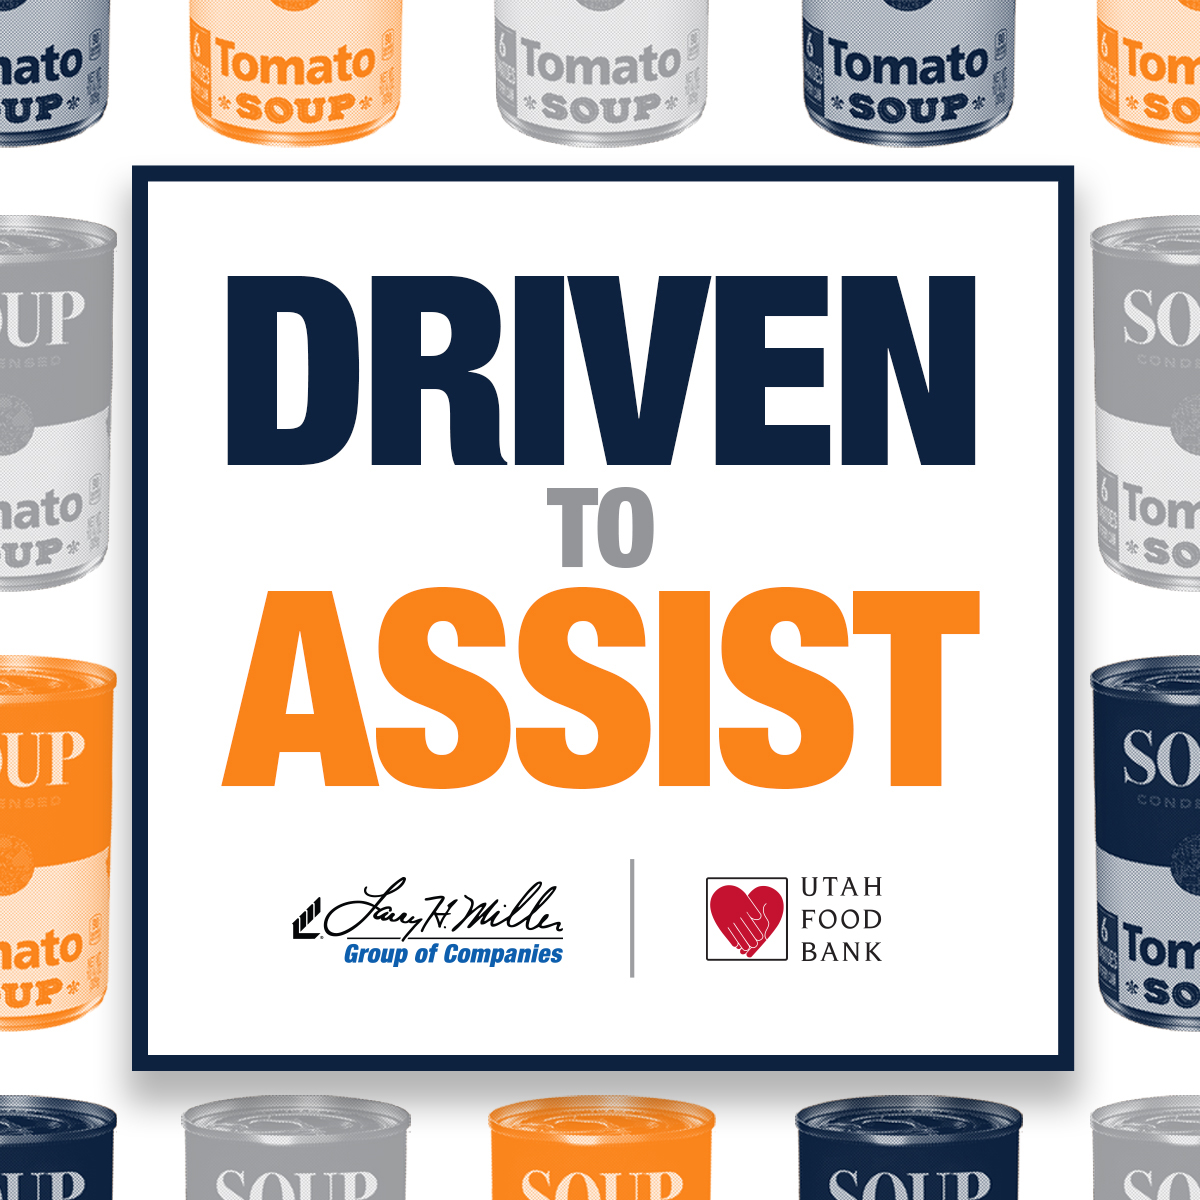 The Larry H. Miller Group of Companies is joining together with @utahfoodbank to help our neighbors:  April 30 - May 6 from 2-6pm. Our dealerships, theatres, and venues will become donation sites for nonperishable food items.   #DriventoAssist